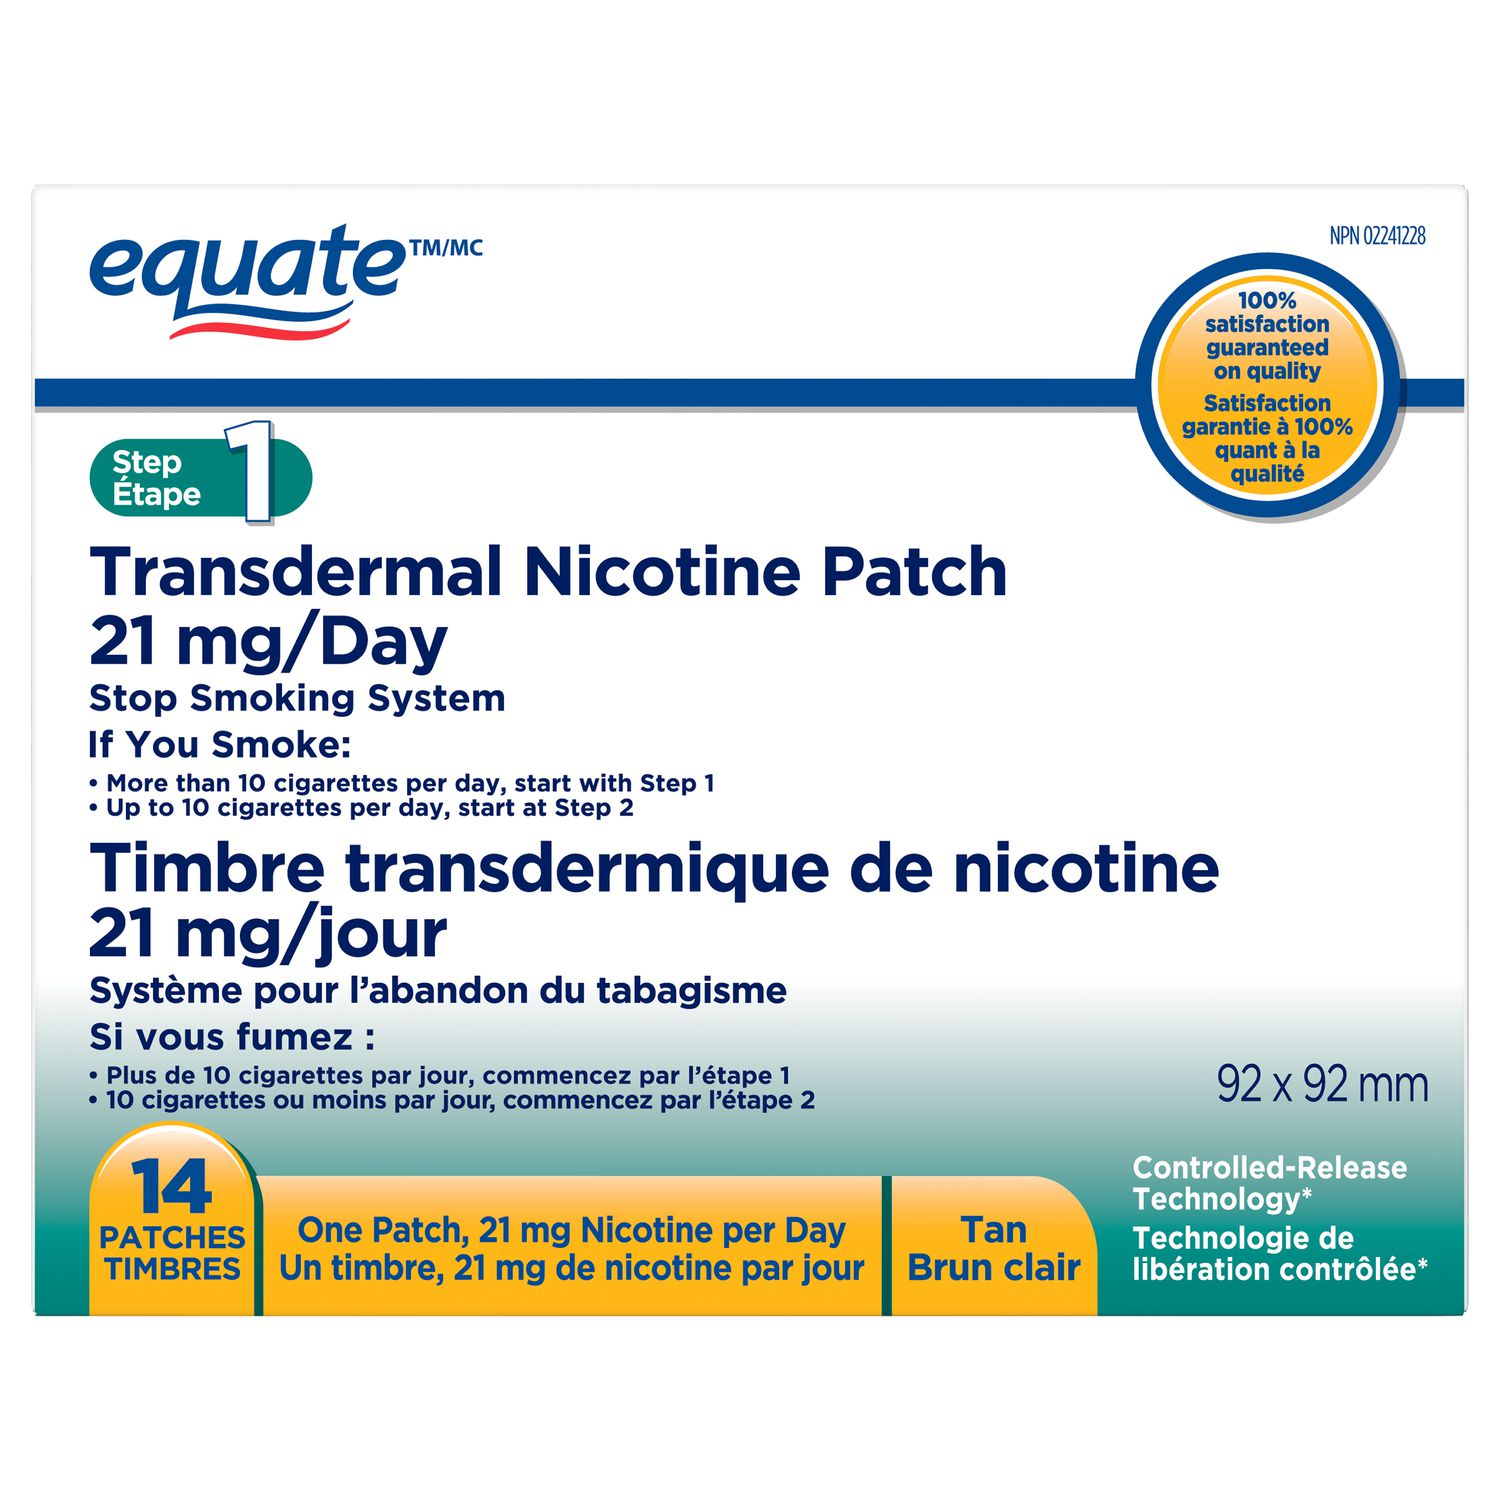 Equate, Step 1 Nicotine Patch, 21 mg/day, Quit Smoking Aid | Walmart Canada